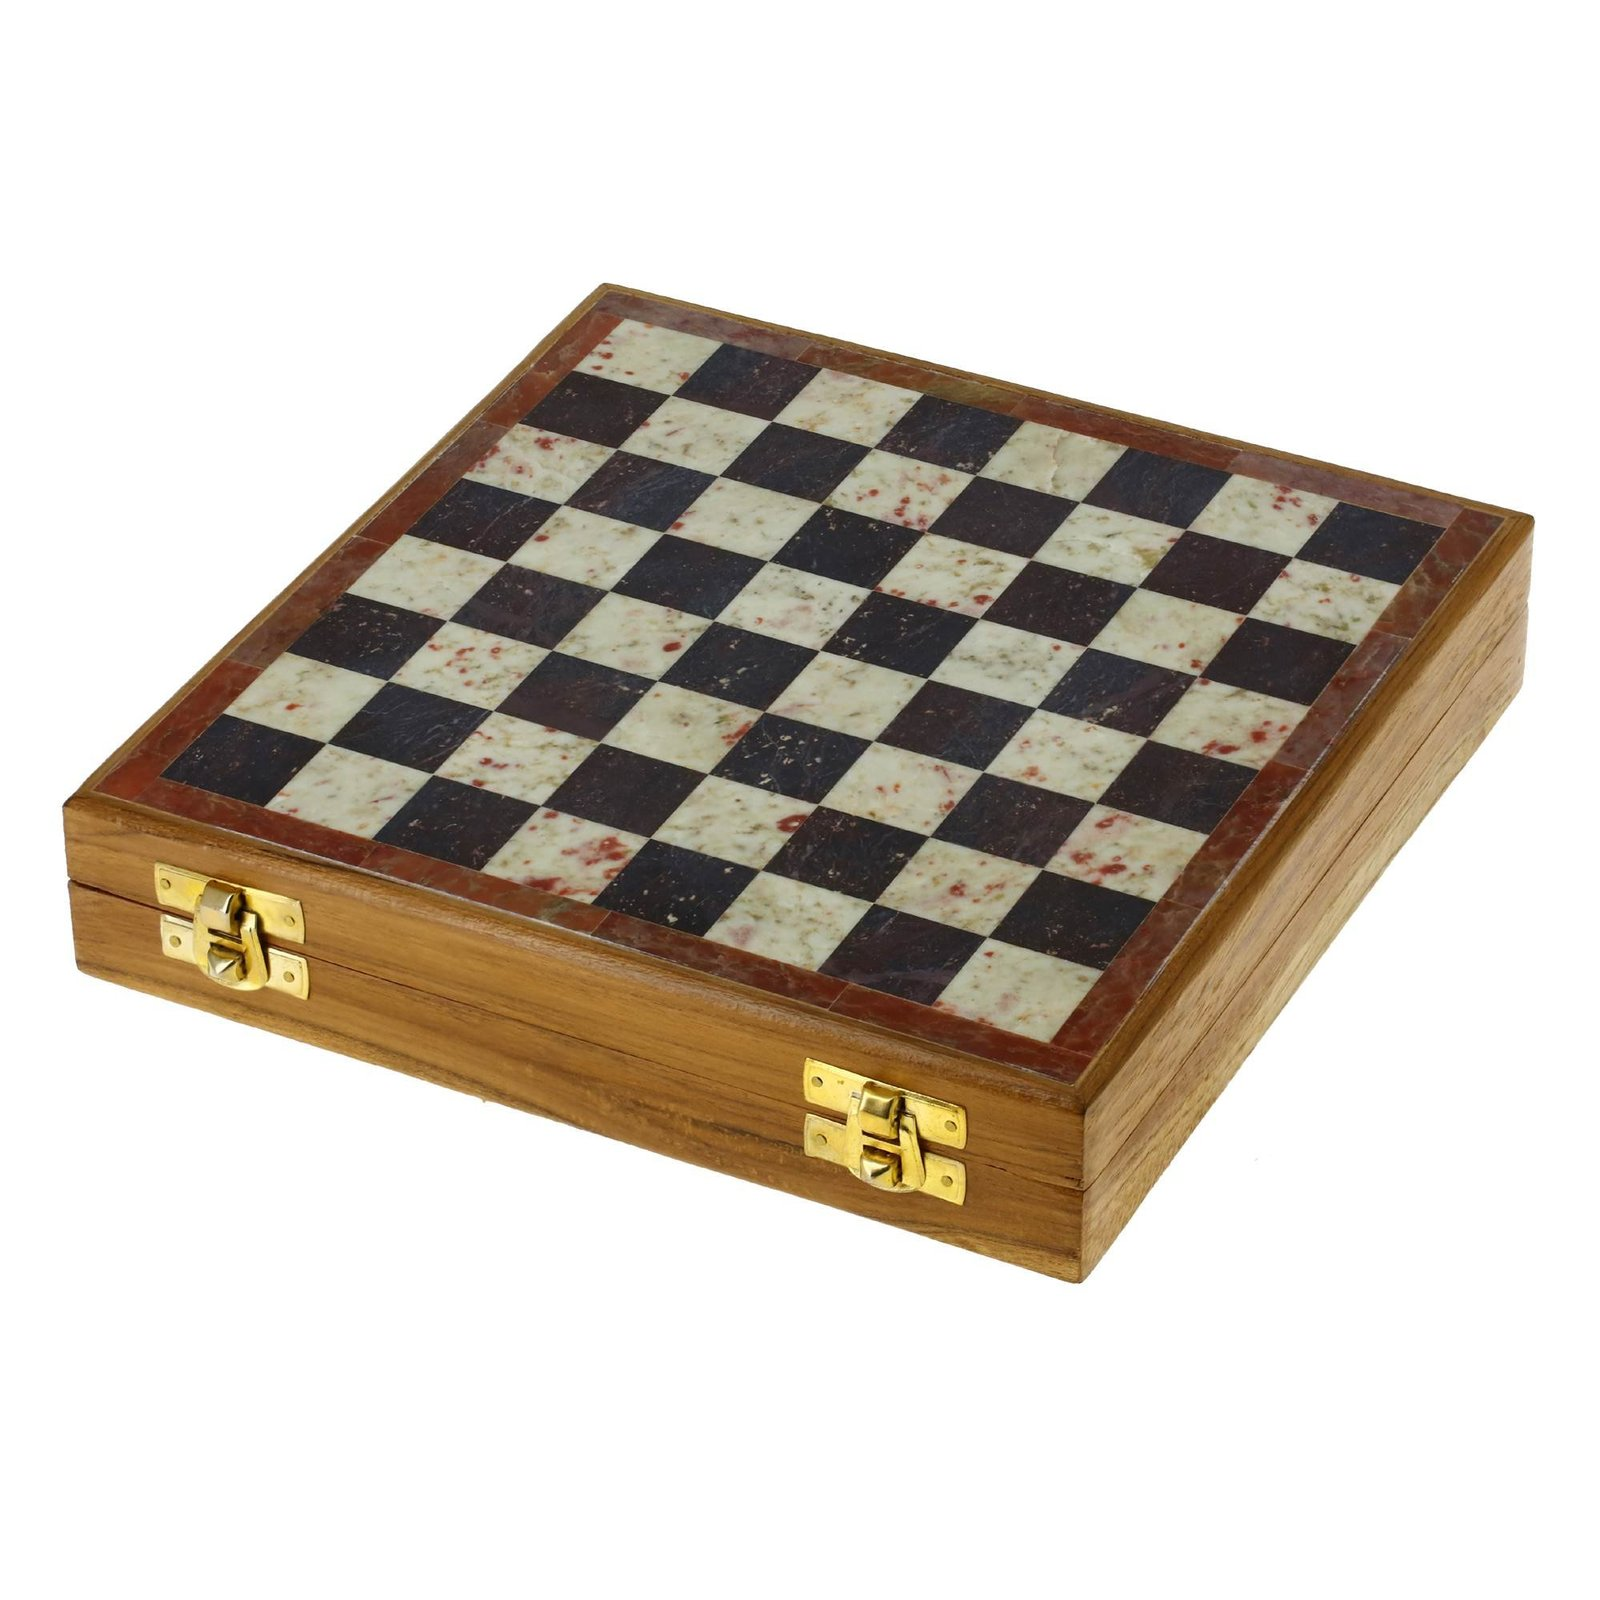 Shalinindia rajasthan stone art unique chess sets and board indian handmade uni home fragrances - Coolest chess boards ...